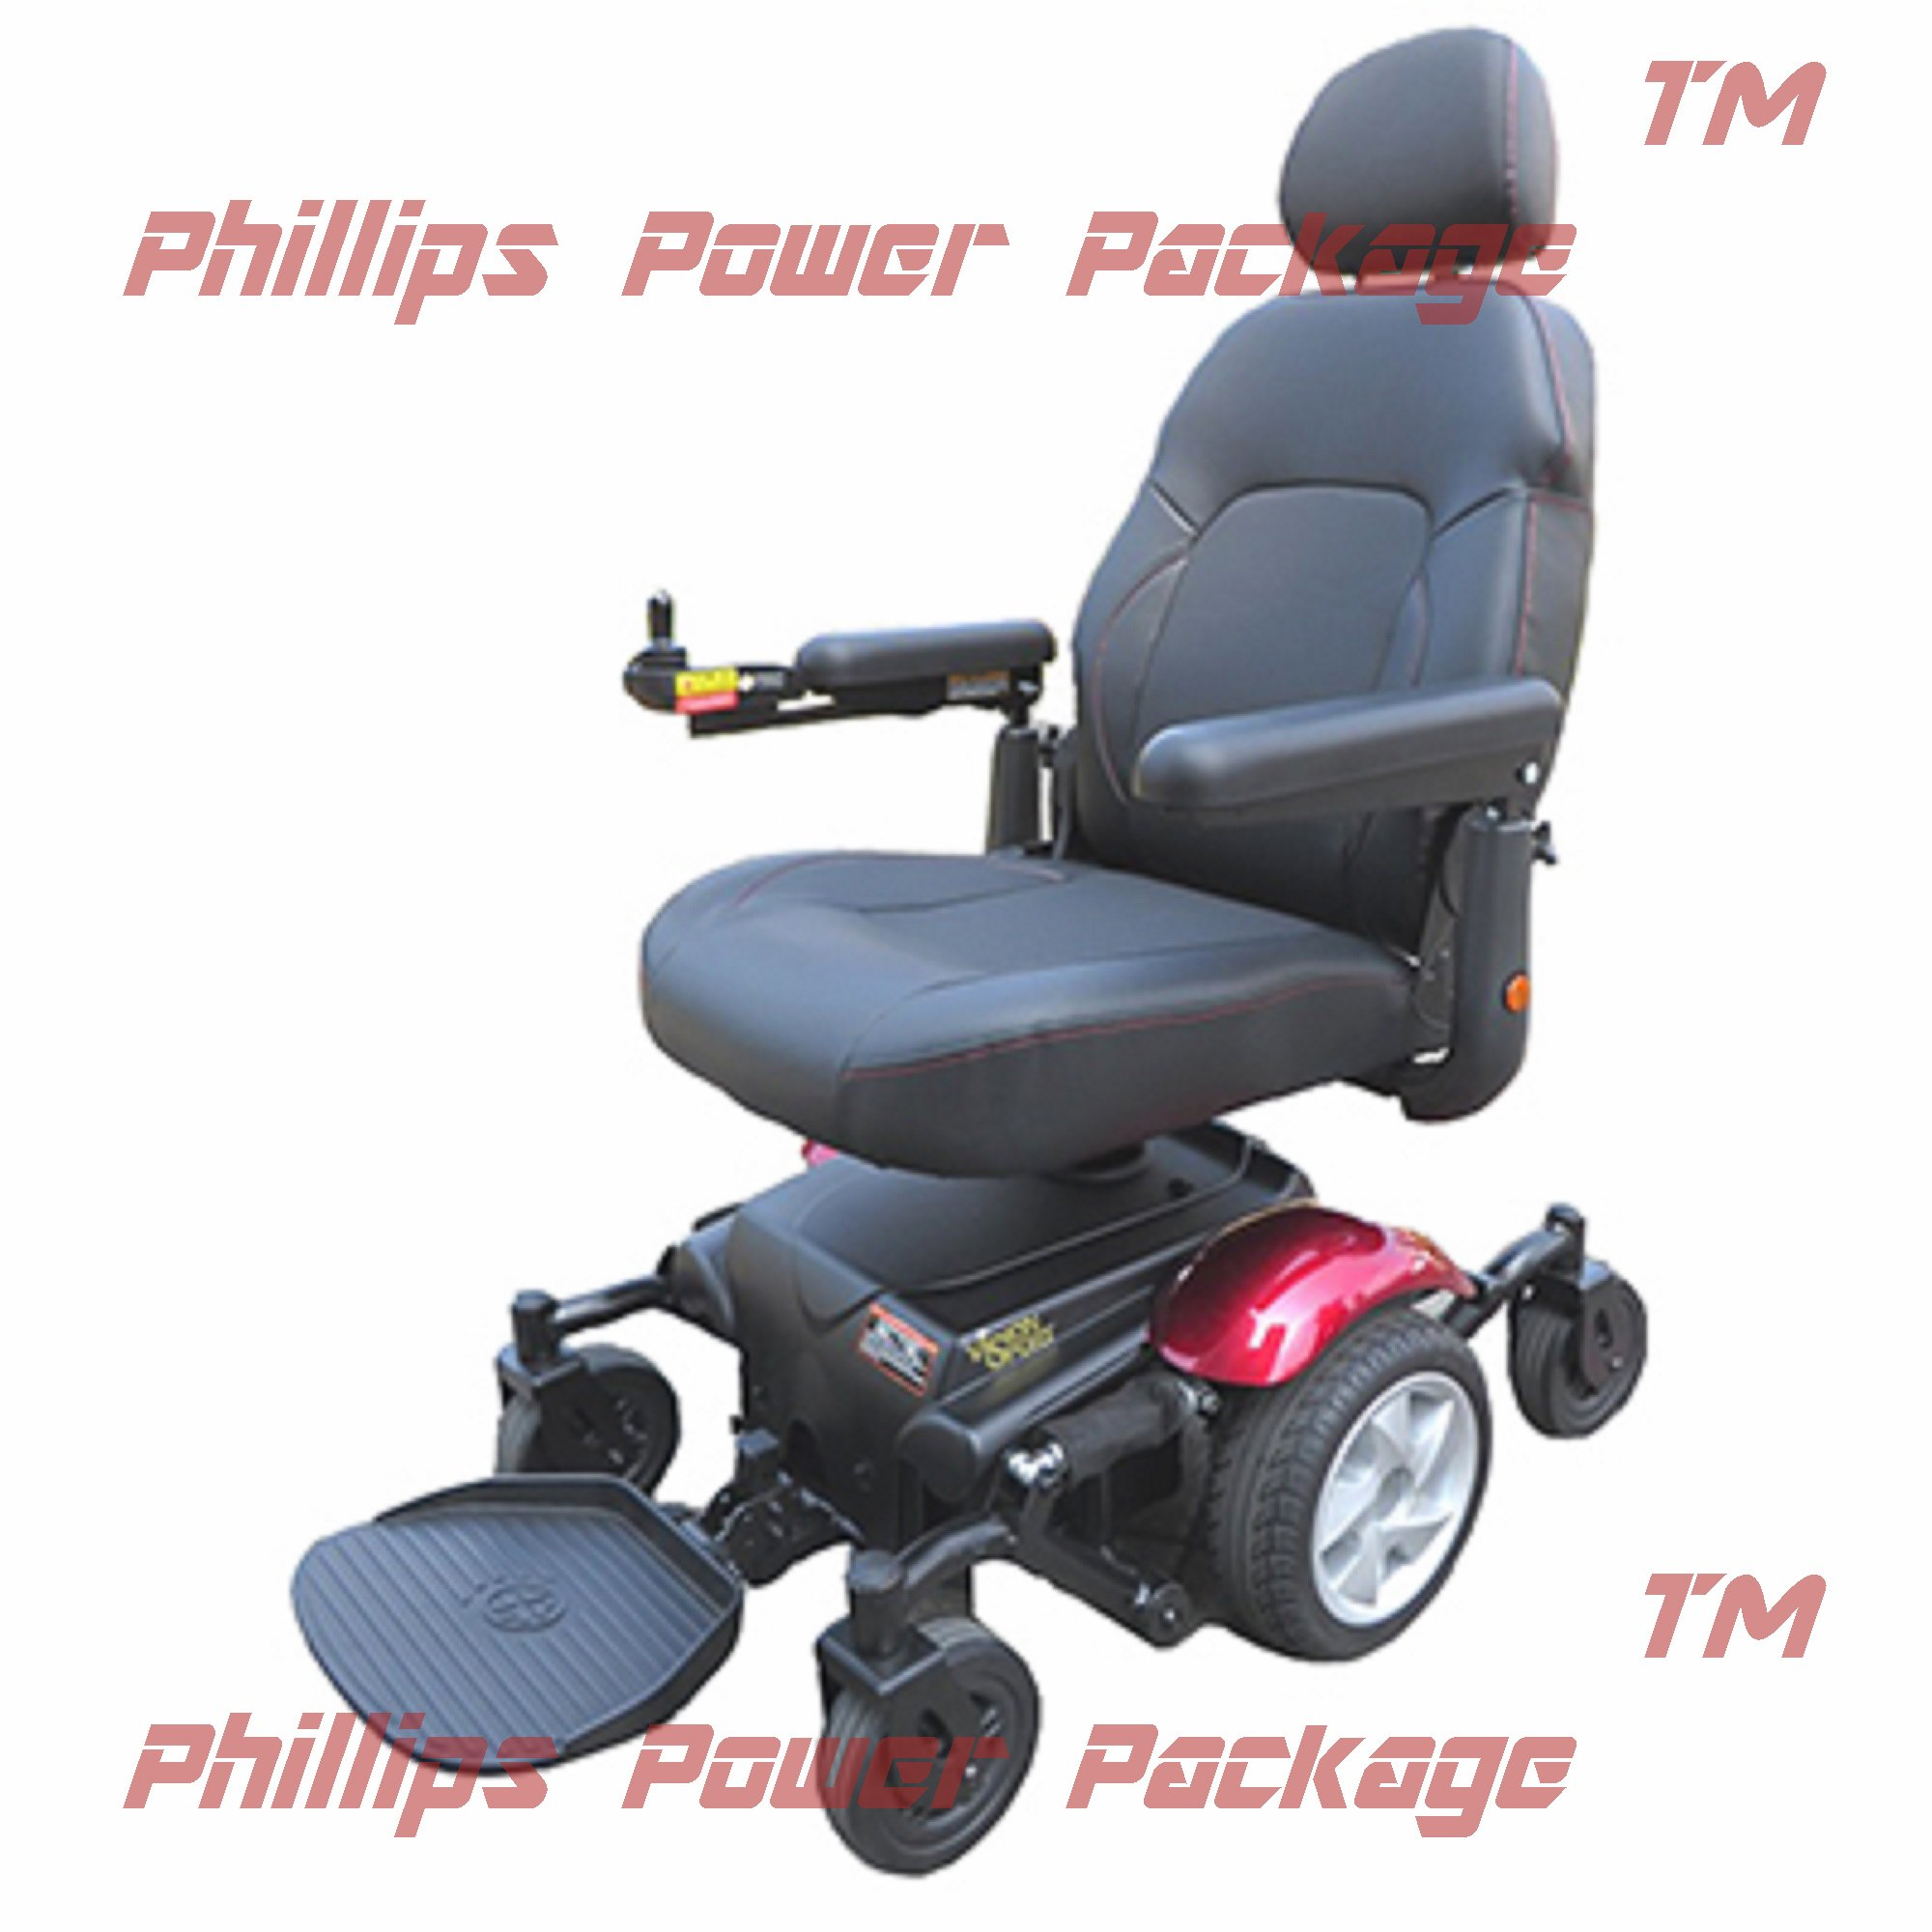 Merits Health Products - Vision Sport - Midwheel Drive Power Chair- 19''W x 18''D - Red - PHILLIPS POWER PACKAGE TM - TO $500 VALUE